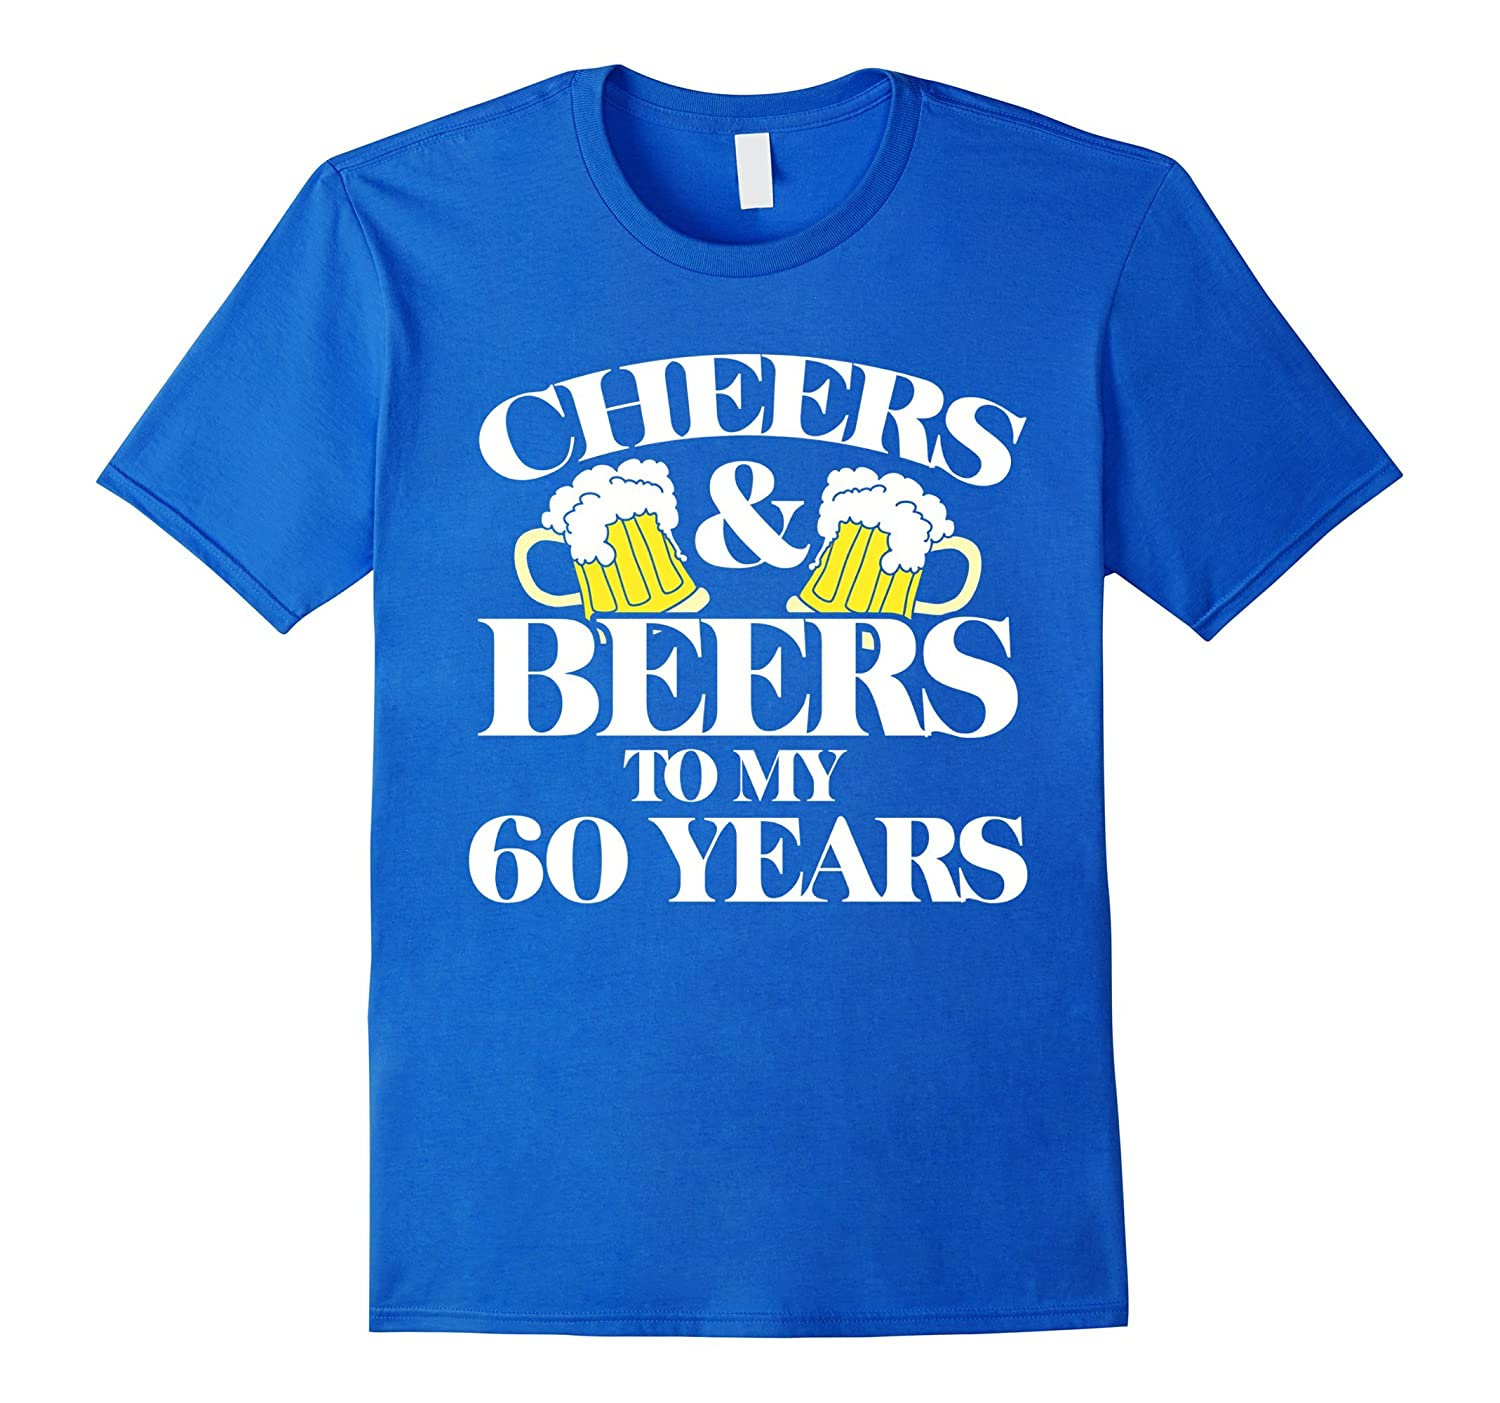 Cheers Beers To My 60 Years Shirt 60th Birthday Party Tee TD